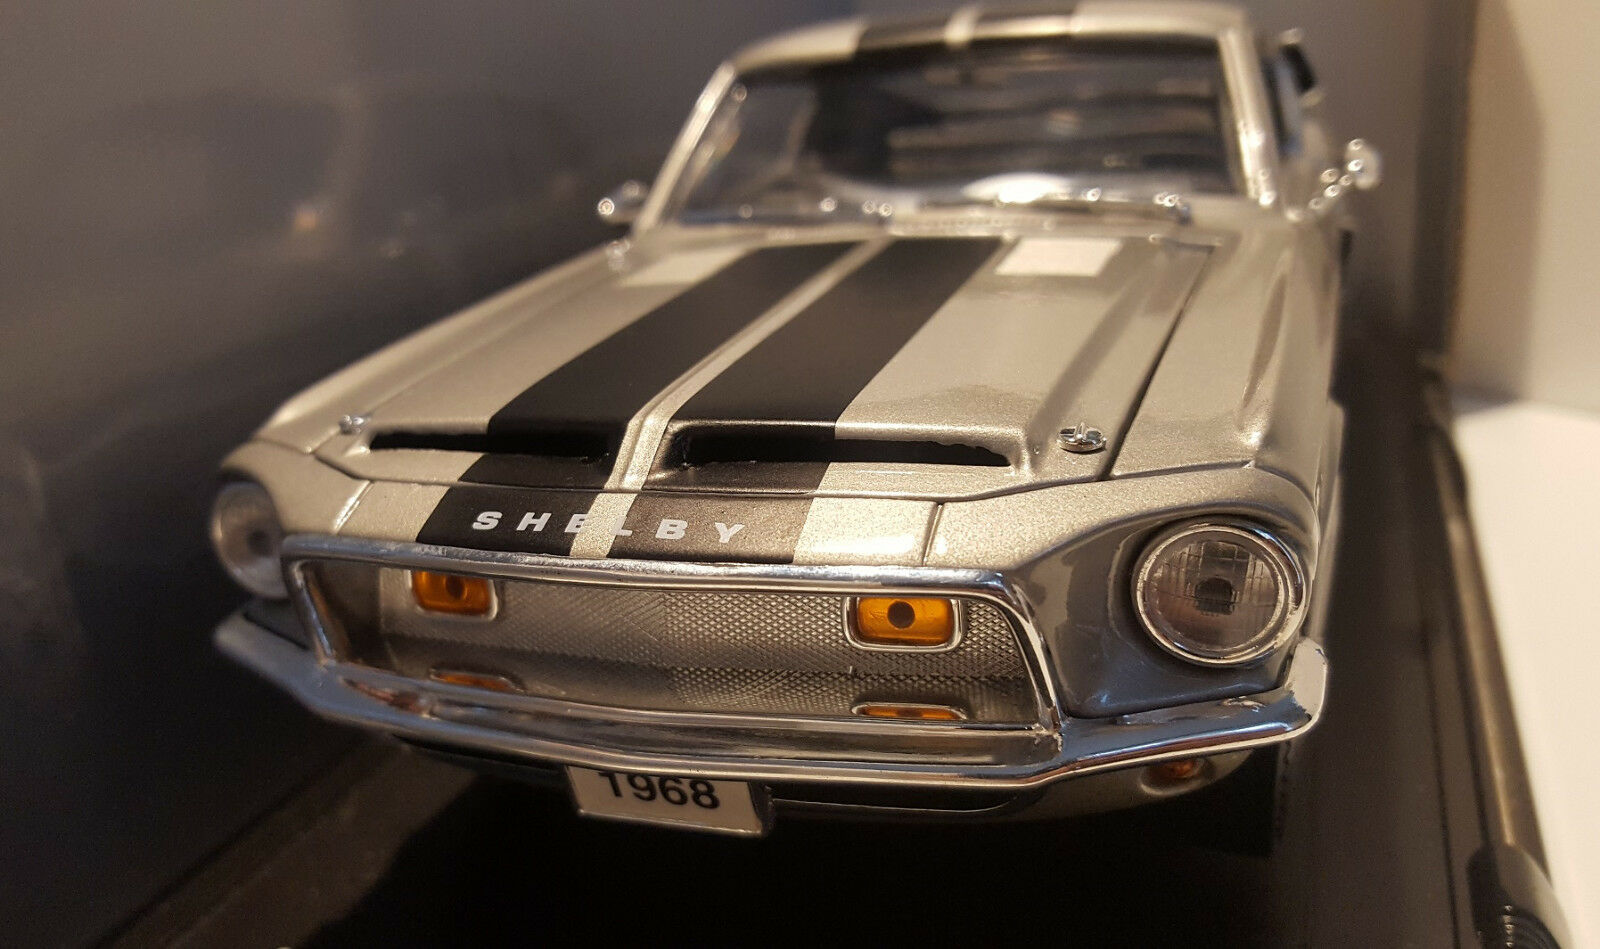 ROAD SIGNATURES 1 18 1968 SHELBY GT-500KR DIECAST MODEL BN CONDITION OFFERS BOX